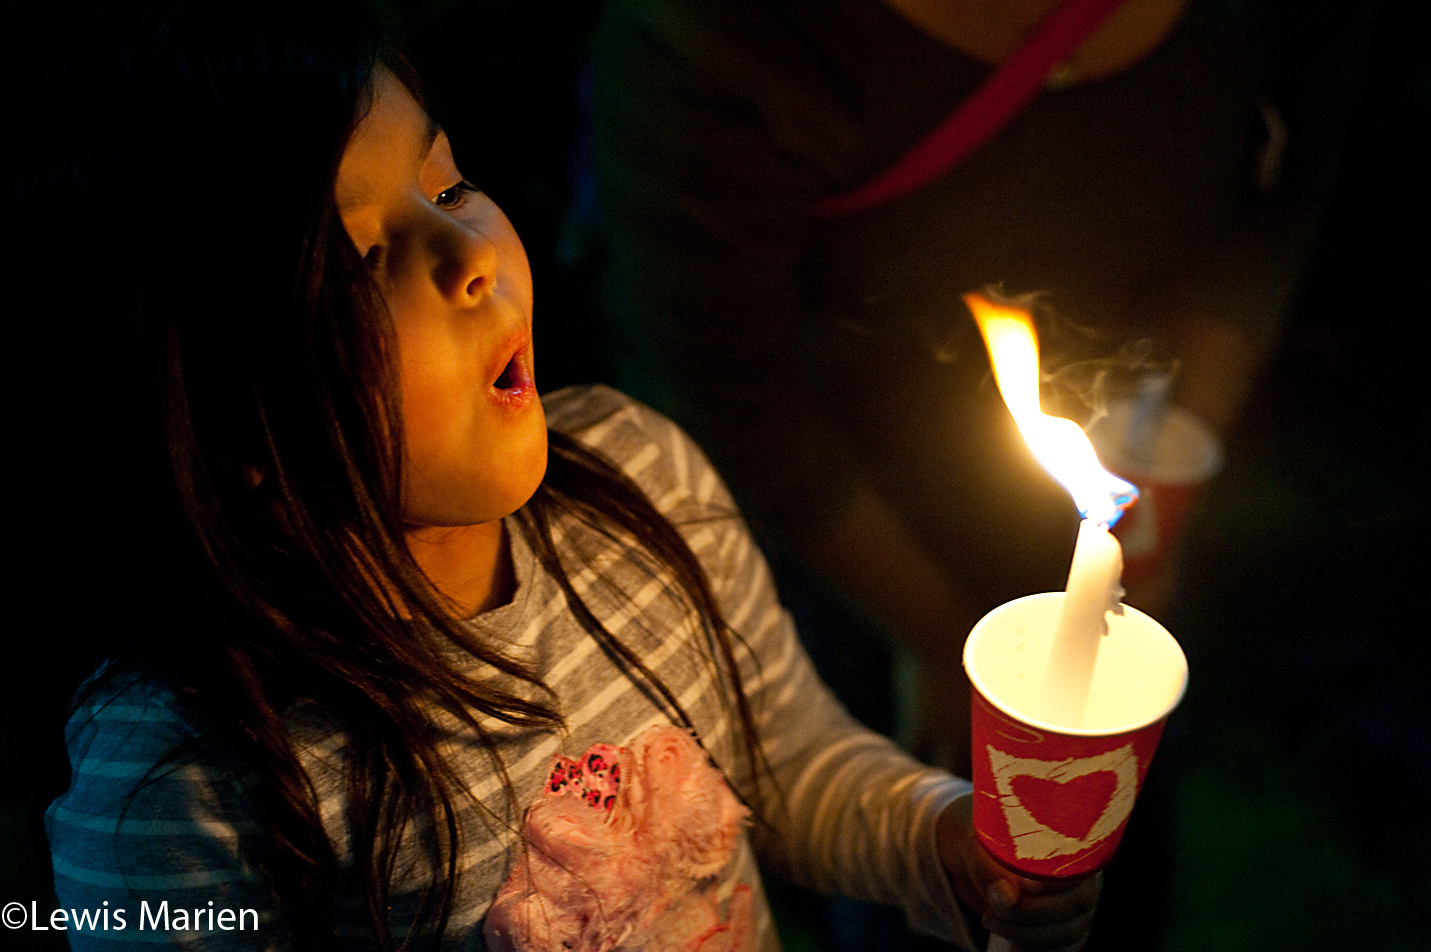 Gabby Nunes, 6, of Galesburg, Ill., tries to blow out her candle during the 22nd annual Take Back the Night Rally's candlelight vigil on Oct. 20 at the Lake Storey Pavilion in Galesburg, Ill.